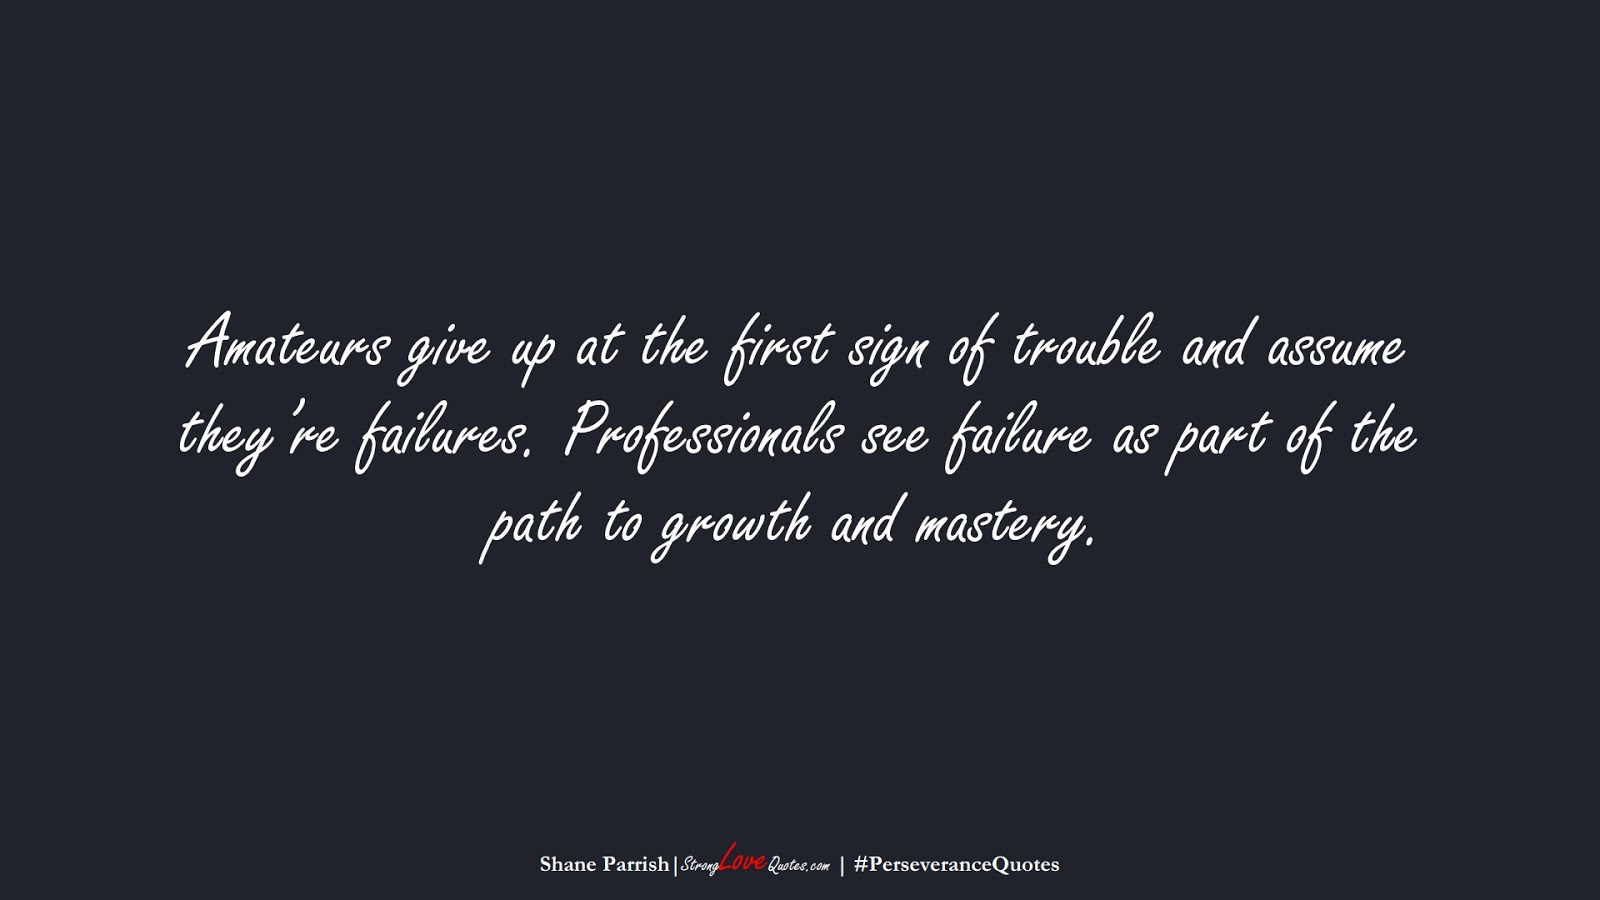 Amateurs give up at the first sign of trouble and assume they're failures. Professionals see failure as part of the path to growth and mastery. (Shane Parrish);  #PerseveranceQuotes